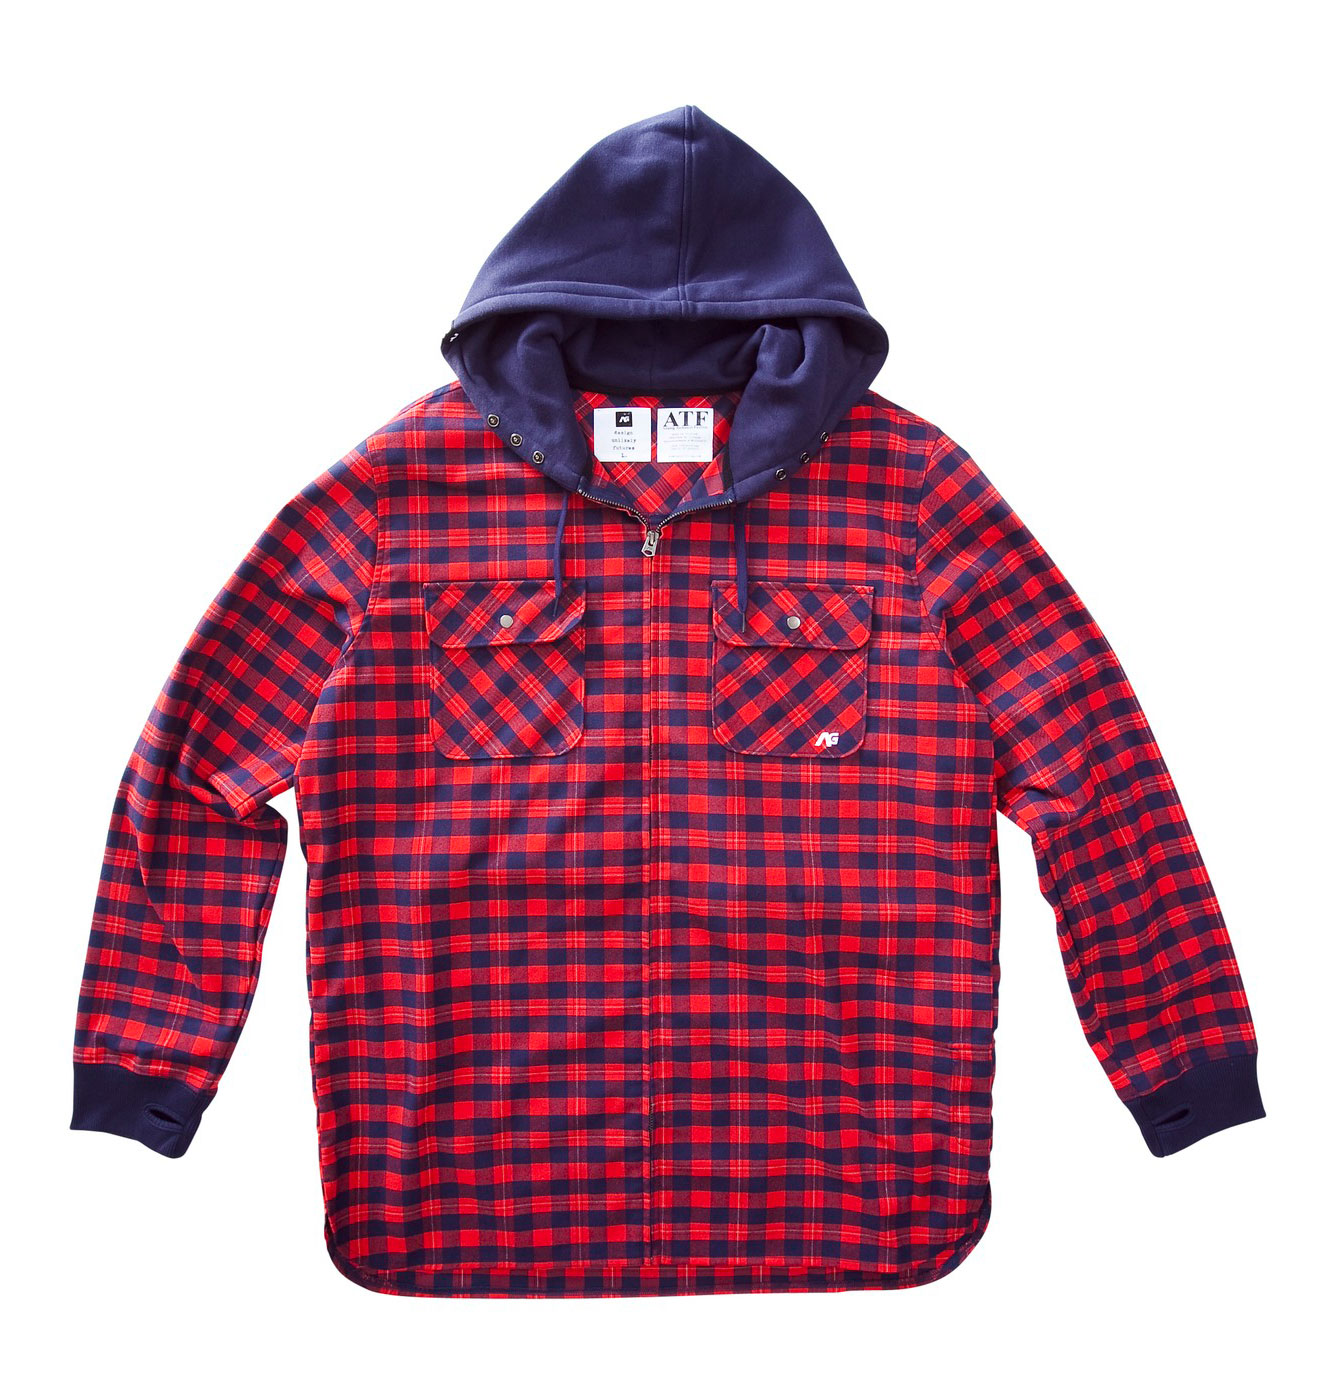 Don't fear the bone biting, skin burning, eye freezing cold when you've got your Analog Integrate Flannel on.  The Integrate Flannel is perfectly designed to get you through those blinding blizzards unscathed.  The lightweight design makes sure you don't break down from exhaustion midway in your journey.  The fleece hood keeps your decision maker (your noggin  intact and on top of its game to get you home safely.  Don't make the silly mistake of leaving home without your Analog Integrate Flannel.Key Features of the Analog Integrate Flannel:  Poly Brushed Flannel Yarn Dye Plaid  Lightweight &  Insulative Flannel Fabric Created By Hollow Yarns  With Mechanical Stretch & Moisture Wicking  Fleece  Hood With Adjustable Snaps And Rib Cuffs With  Thumbholes  Team Fit - $68.95